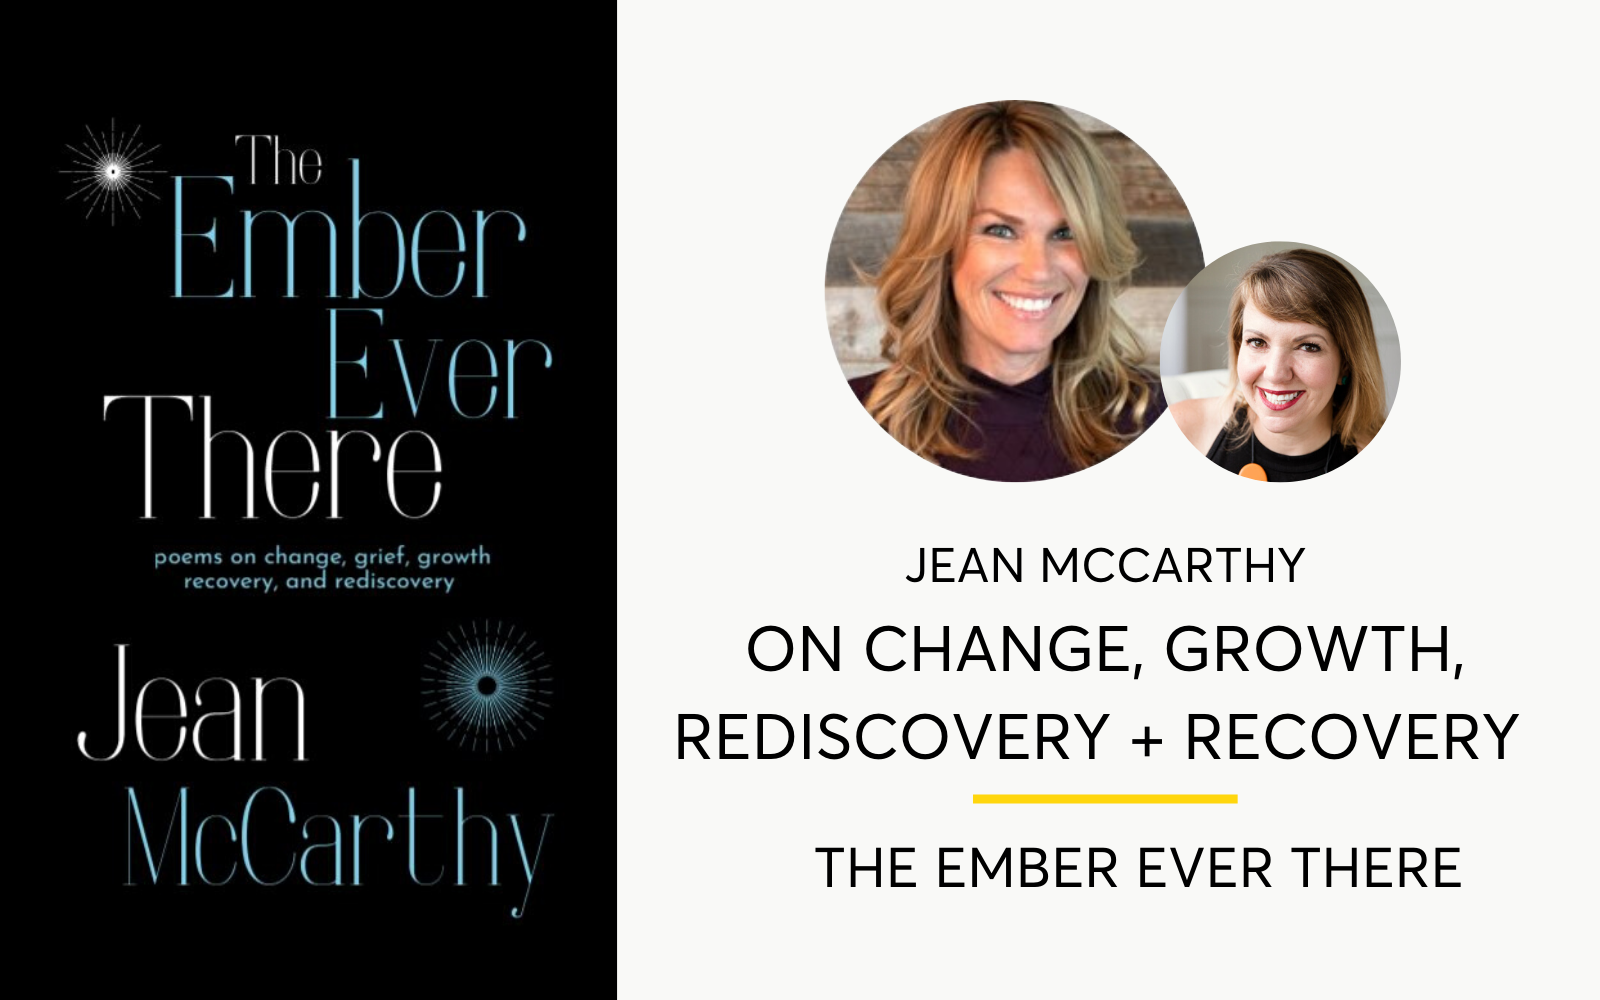 Jean McCarthy on Change, Grief, Growth, Rediscovery and Recovery – The Ember Ever There